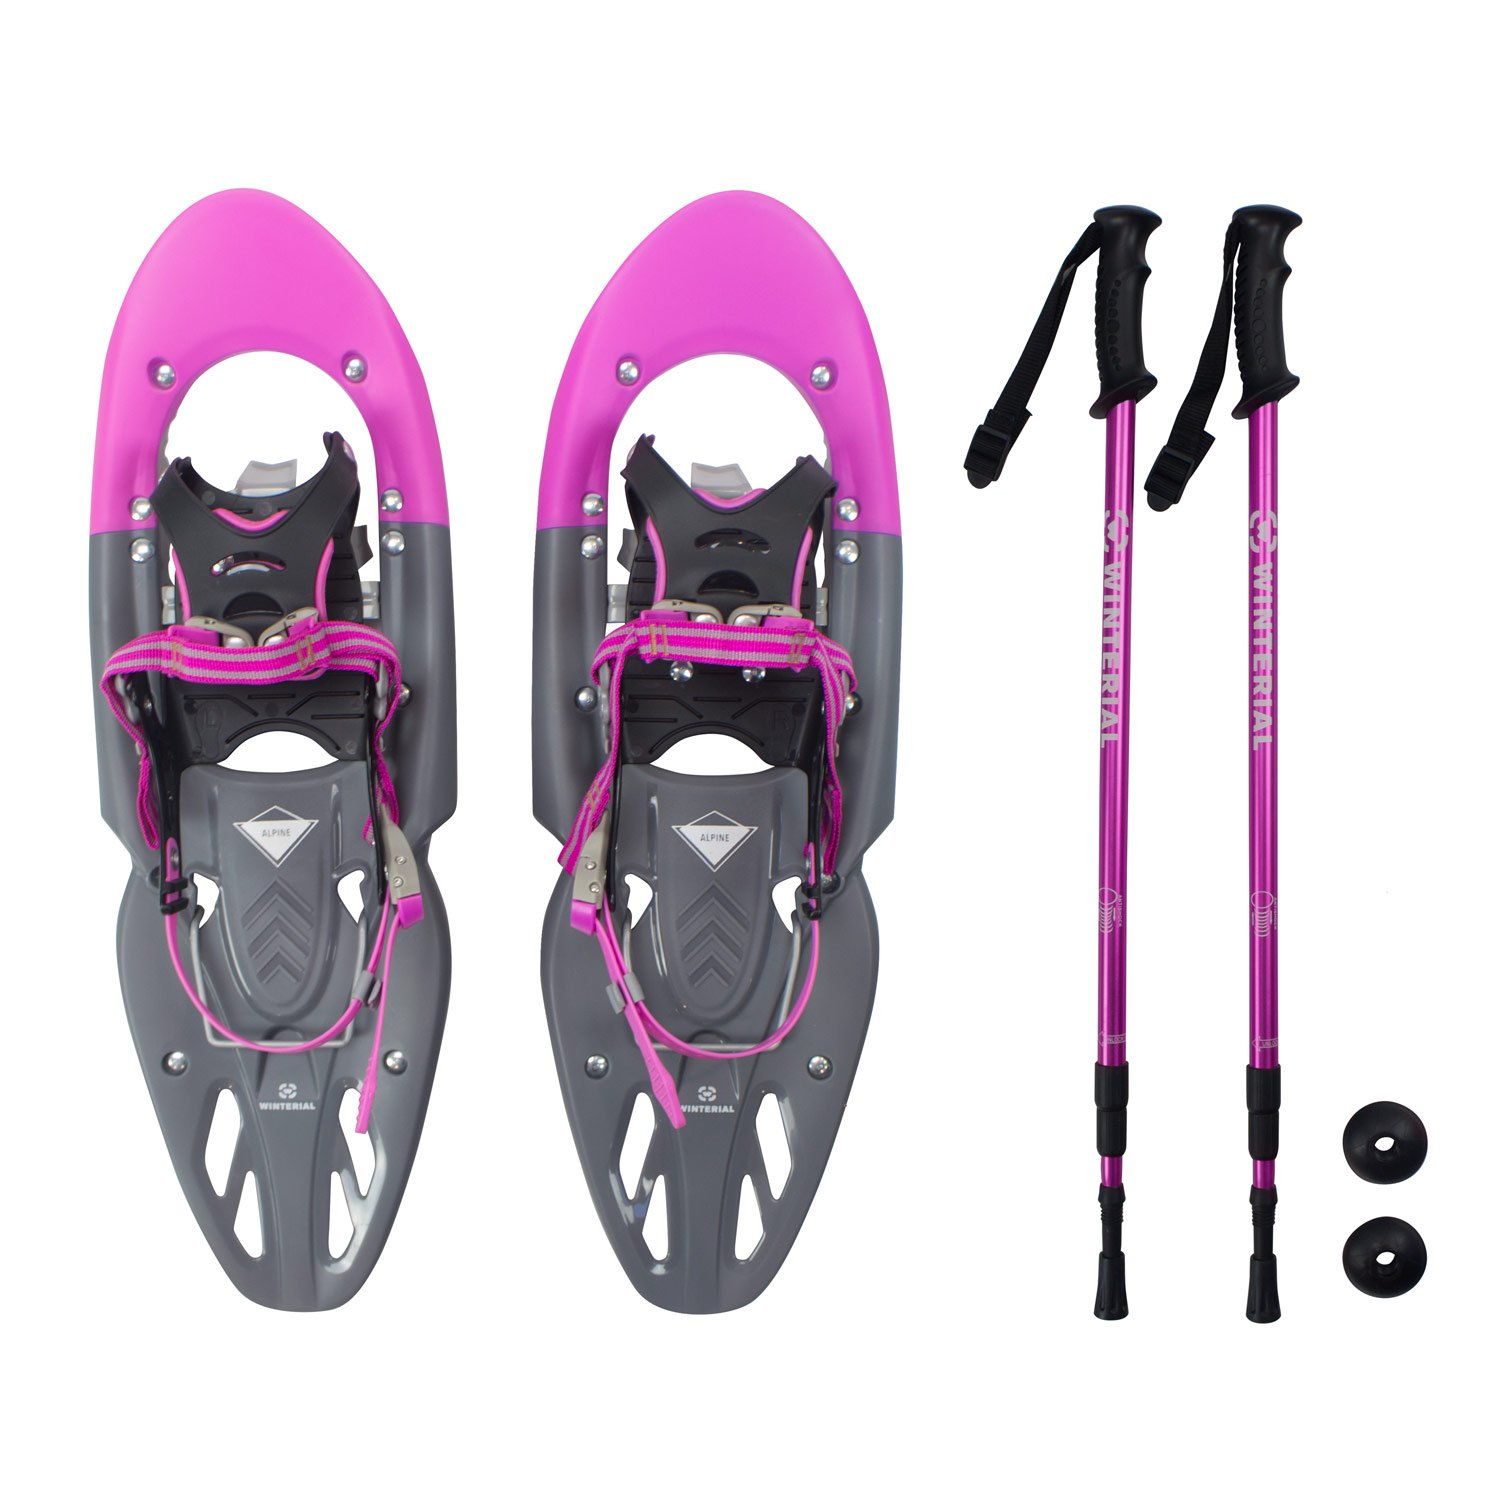 Winterial Yukon Snowshoes 2018/Advanced/Backcountry/Snowshoeing/Women/Pink/All Terrain Snow shoes/POLES INCLUDED! by Winterial